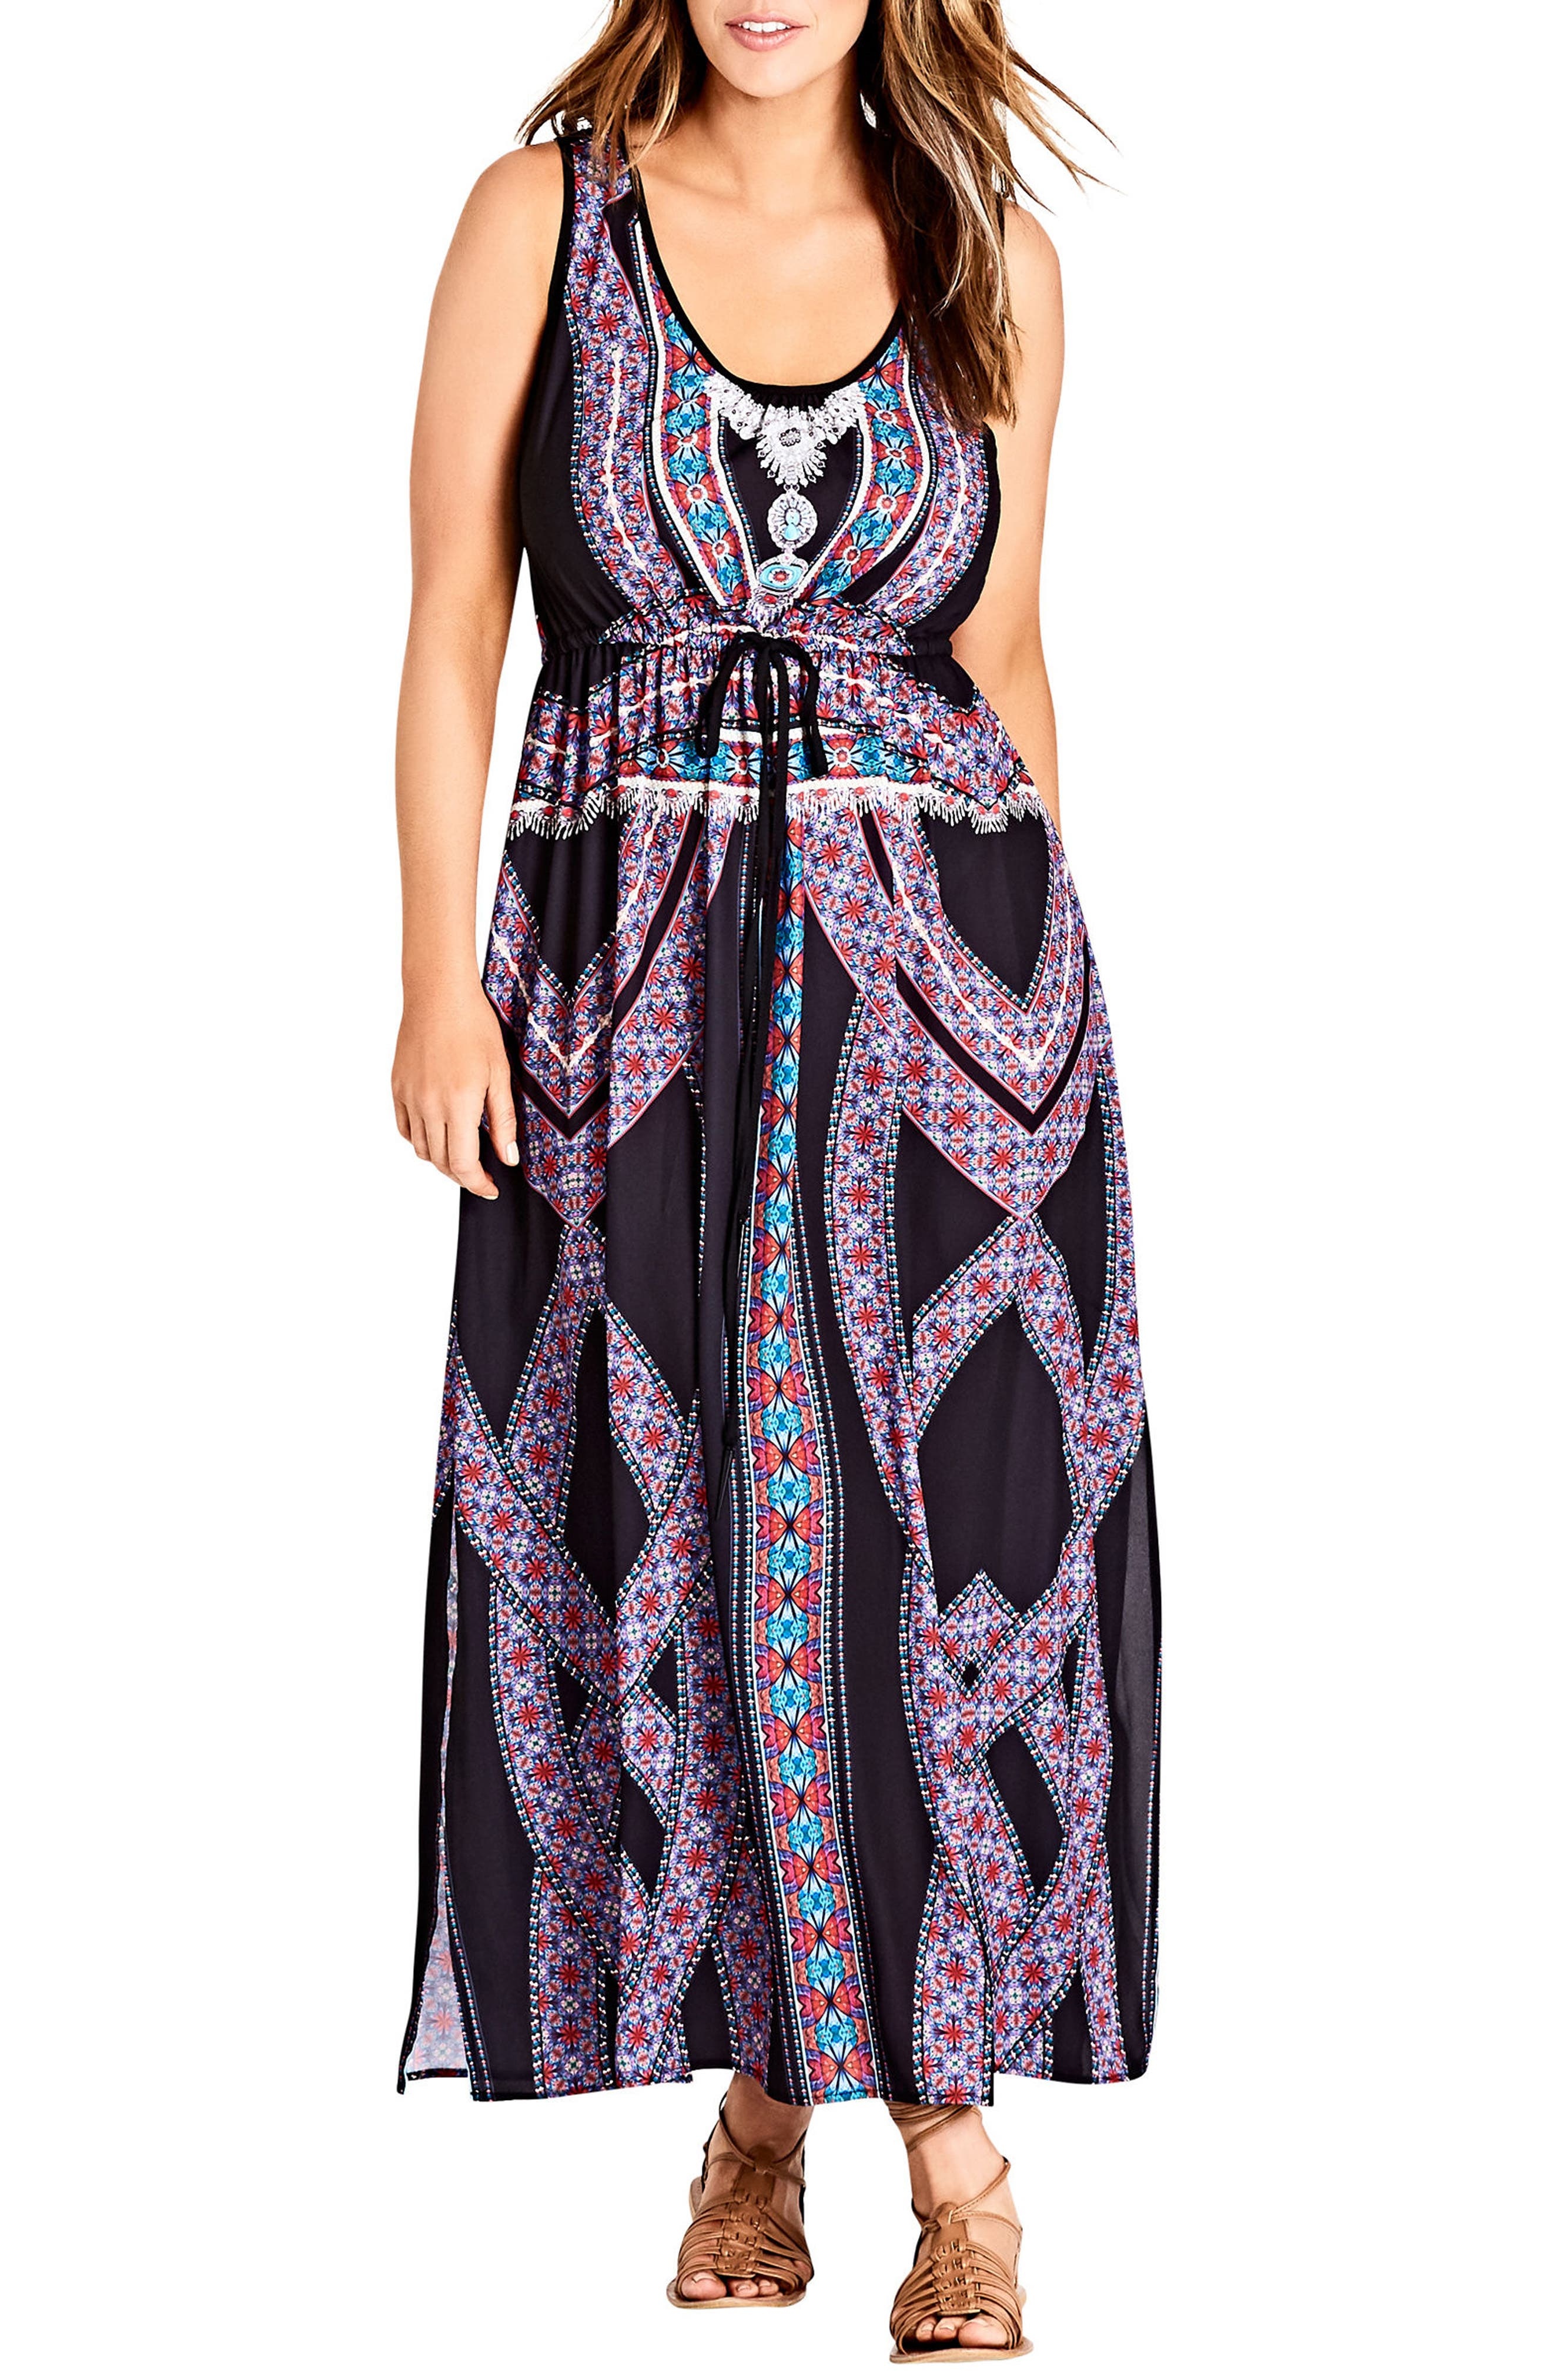 Brasilia Maxi Dress,                             Main thumbnail 1, color,                             001